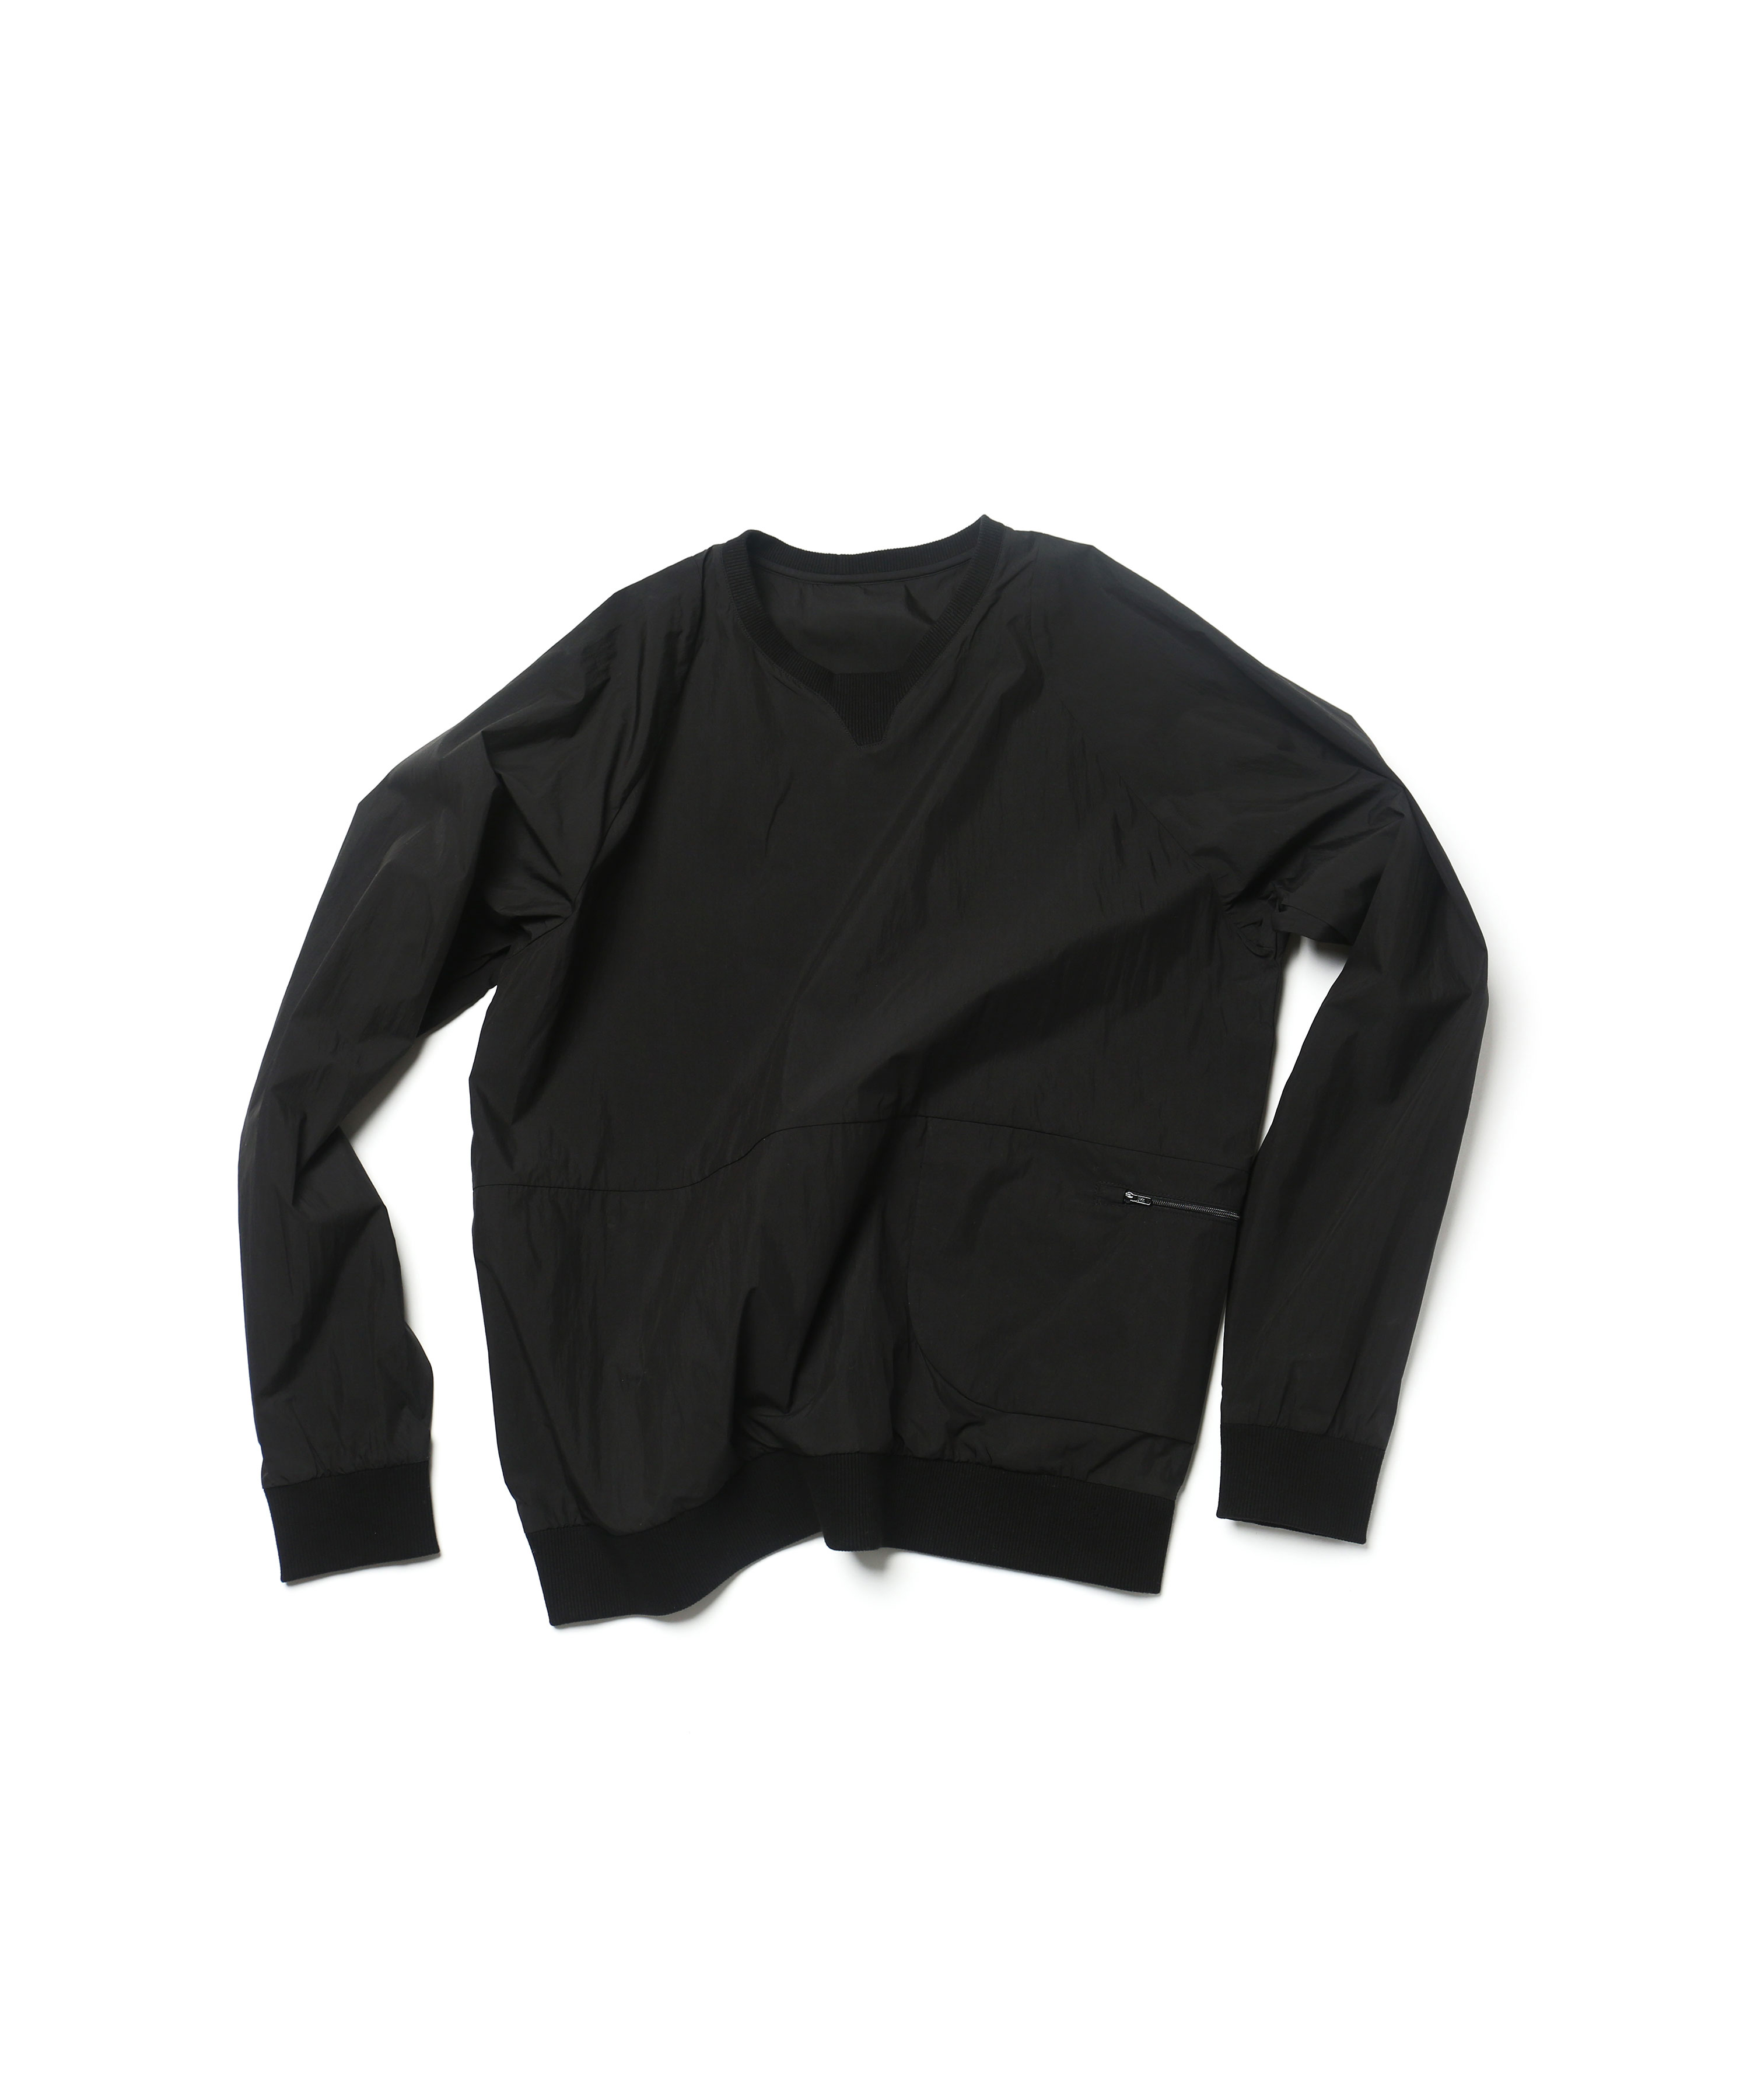 BLACK PACKABLE SWEATSHIRTS 01